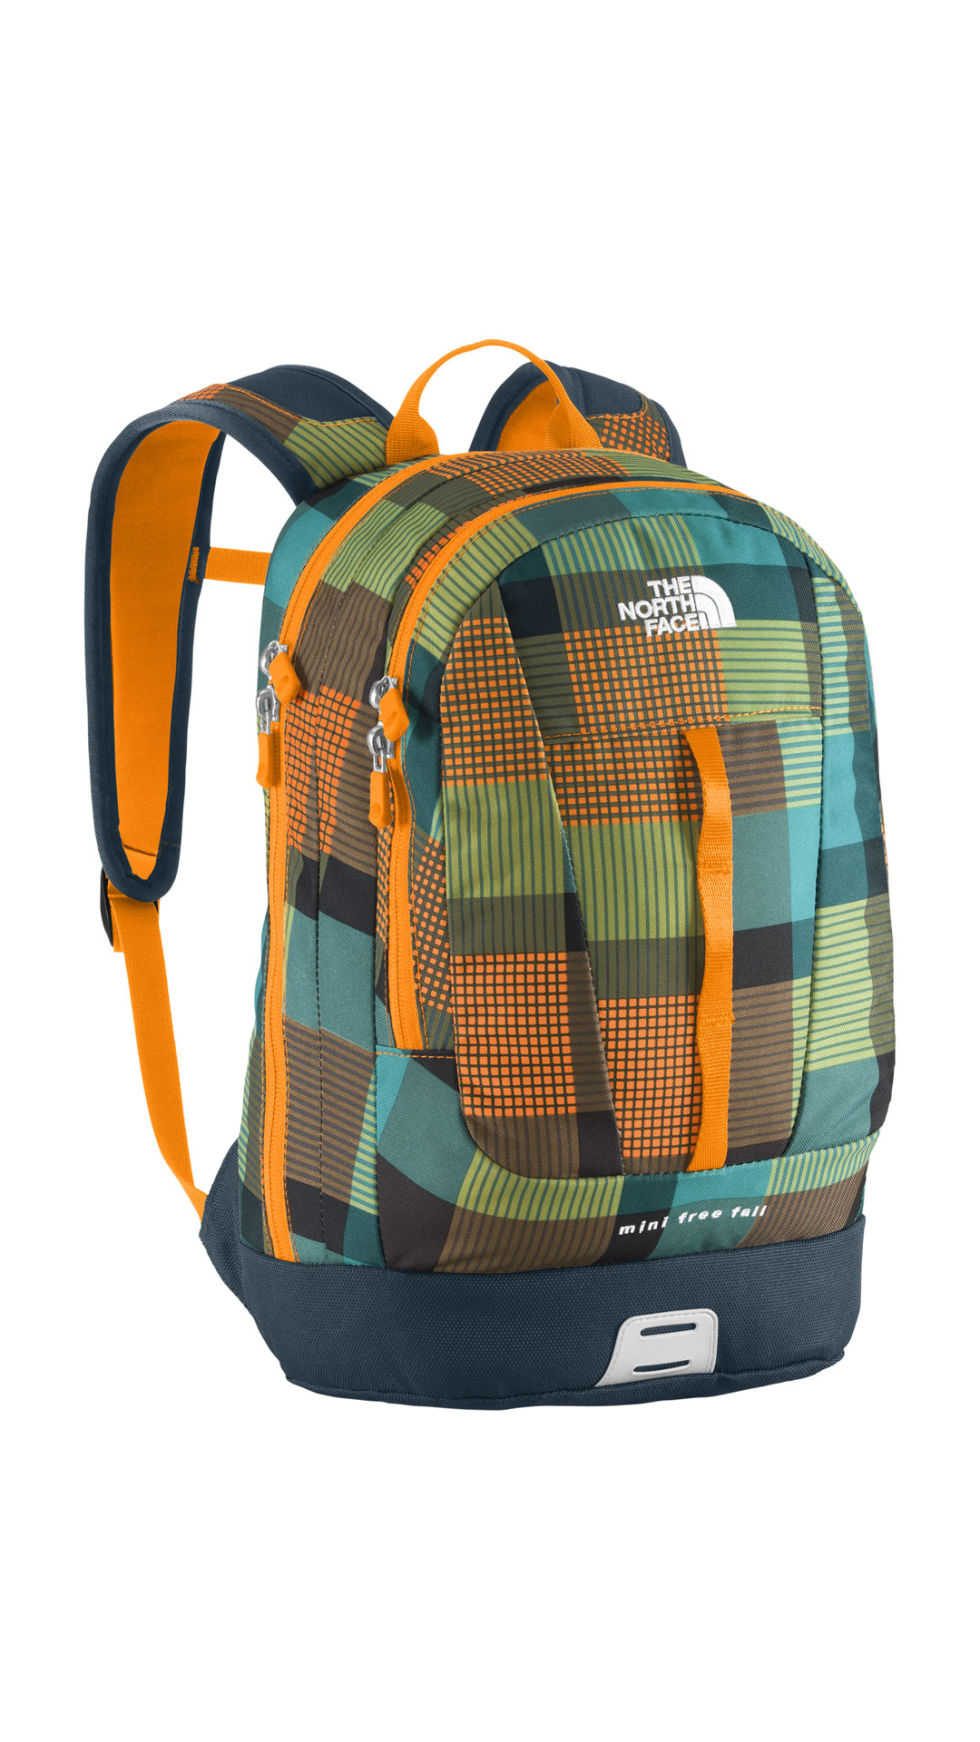 Kids Backpacks For School 7KRX7CnN